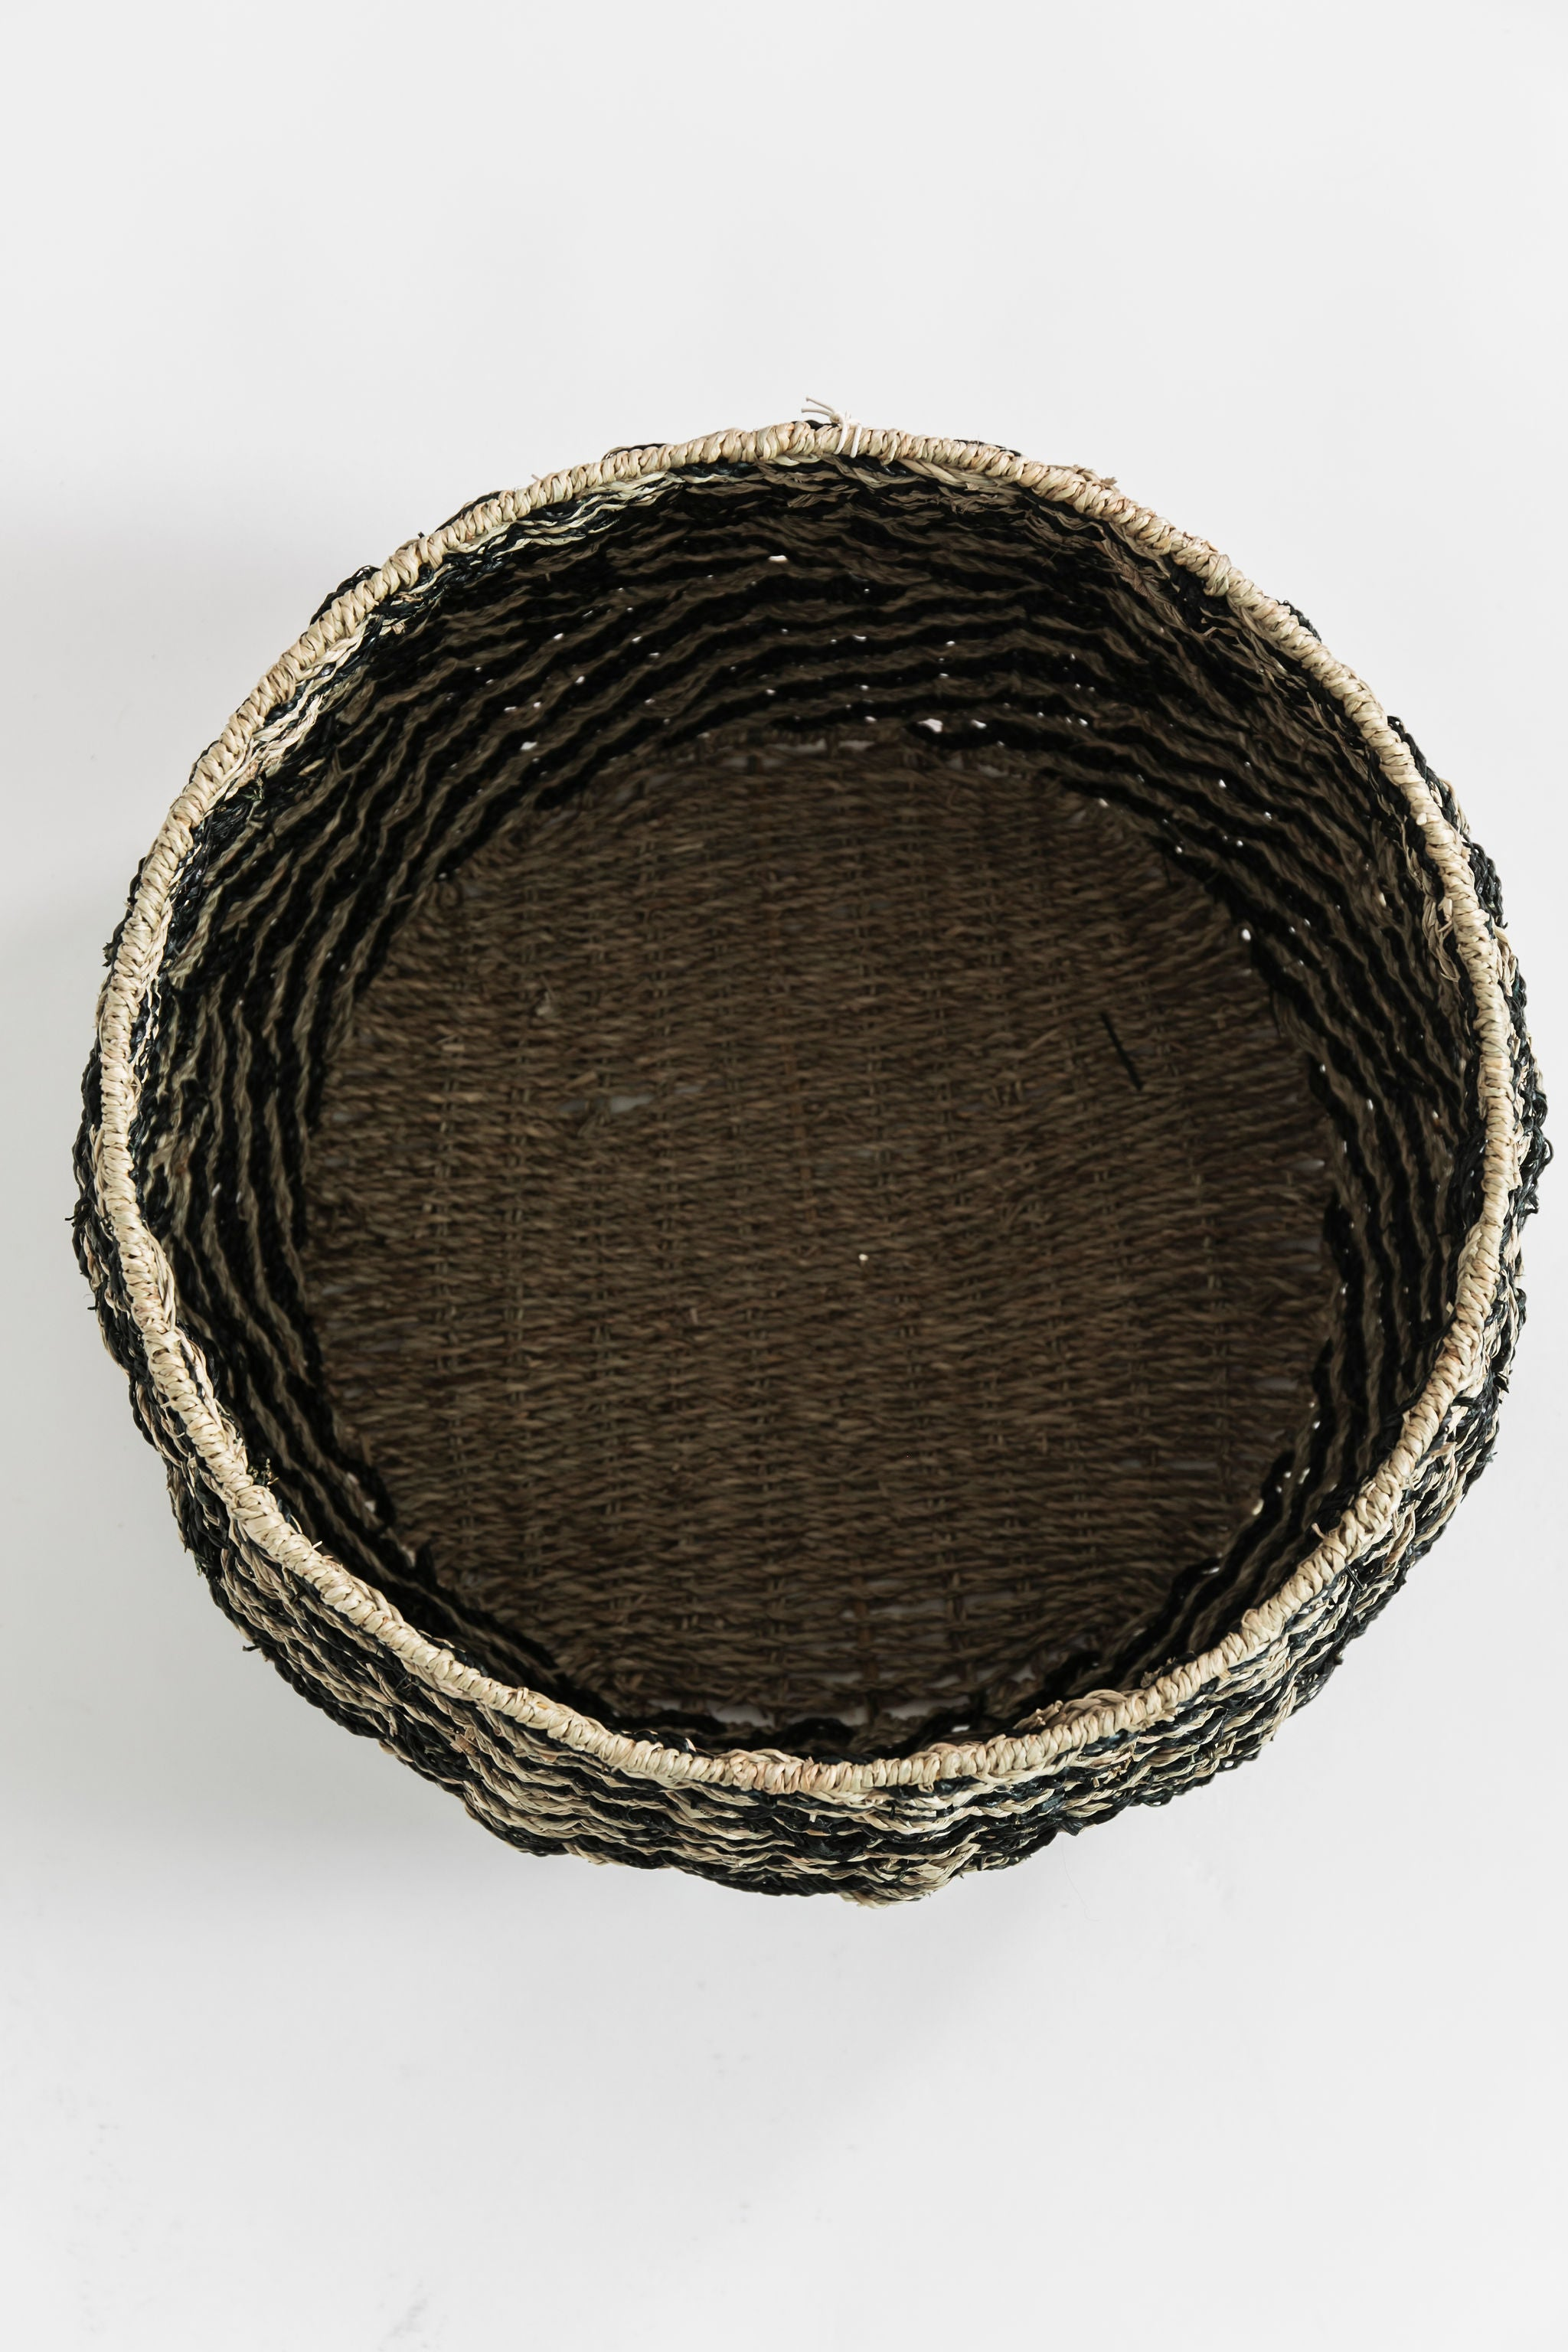 Chevron Woven Seagrass Basket- Medium